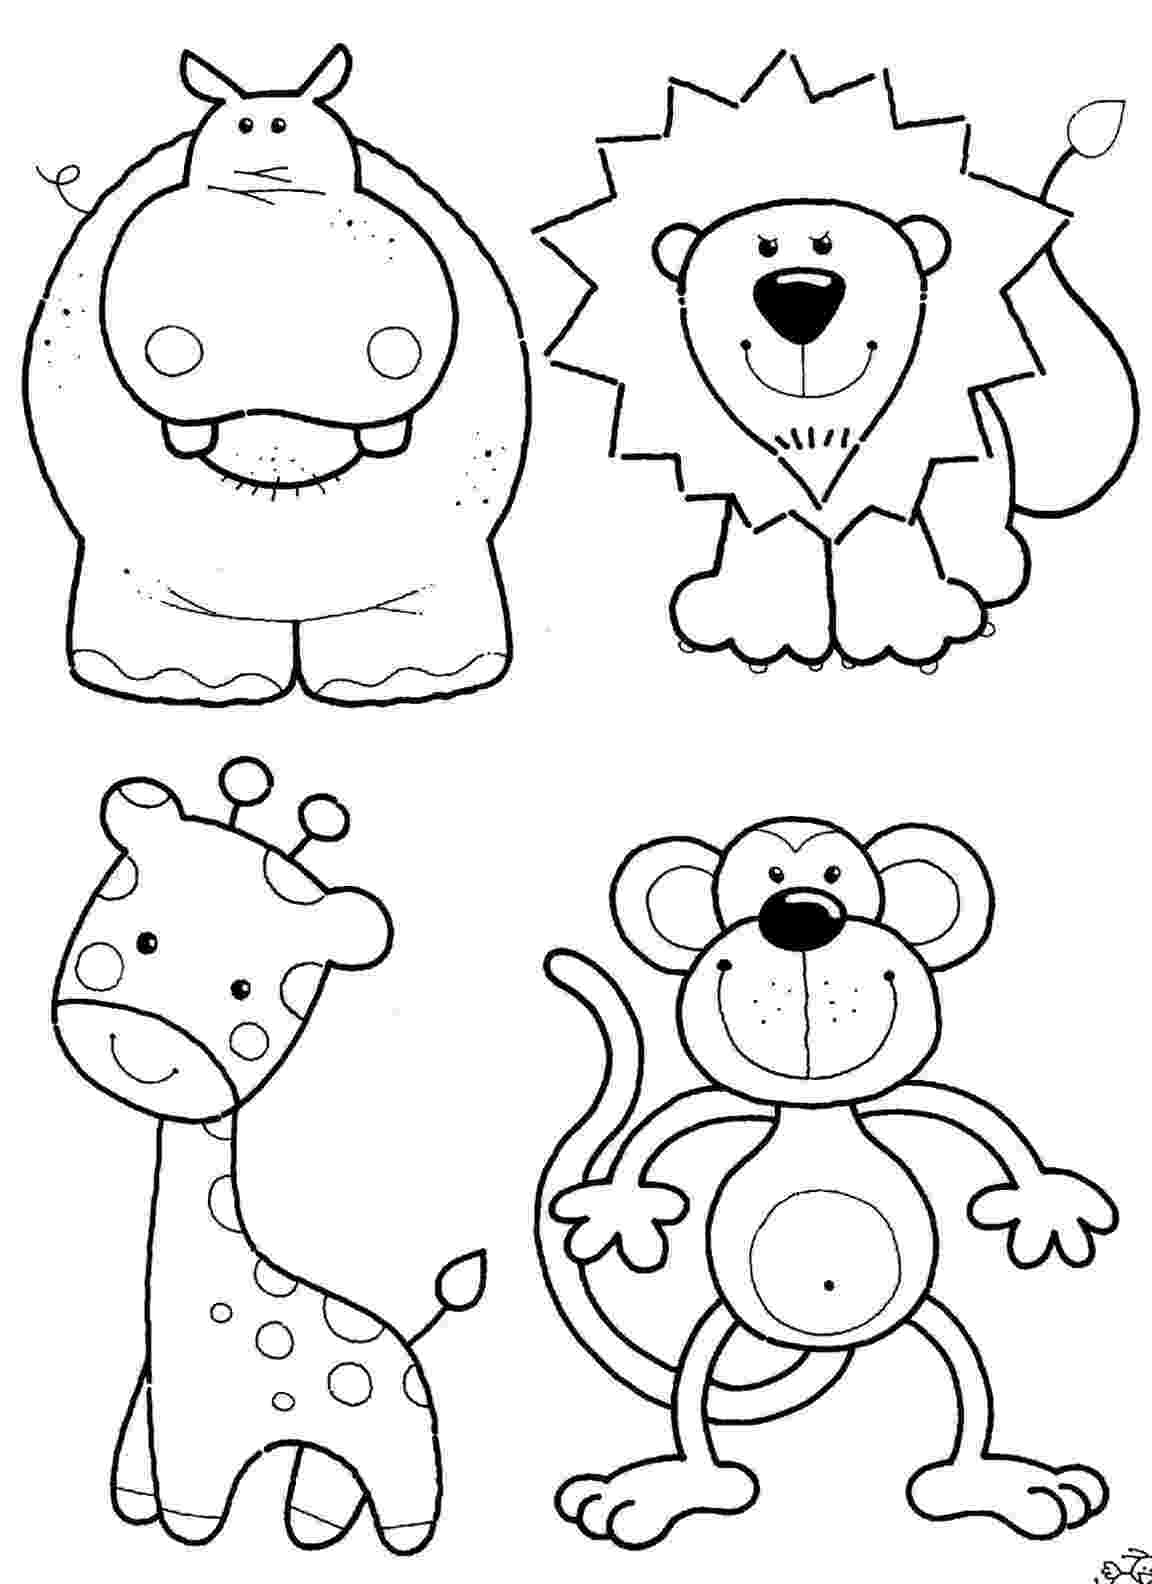 coloring pages animals adult coloring pages animals best coloring pages for kids coloring pages animals 1 1